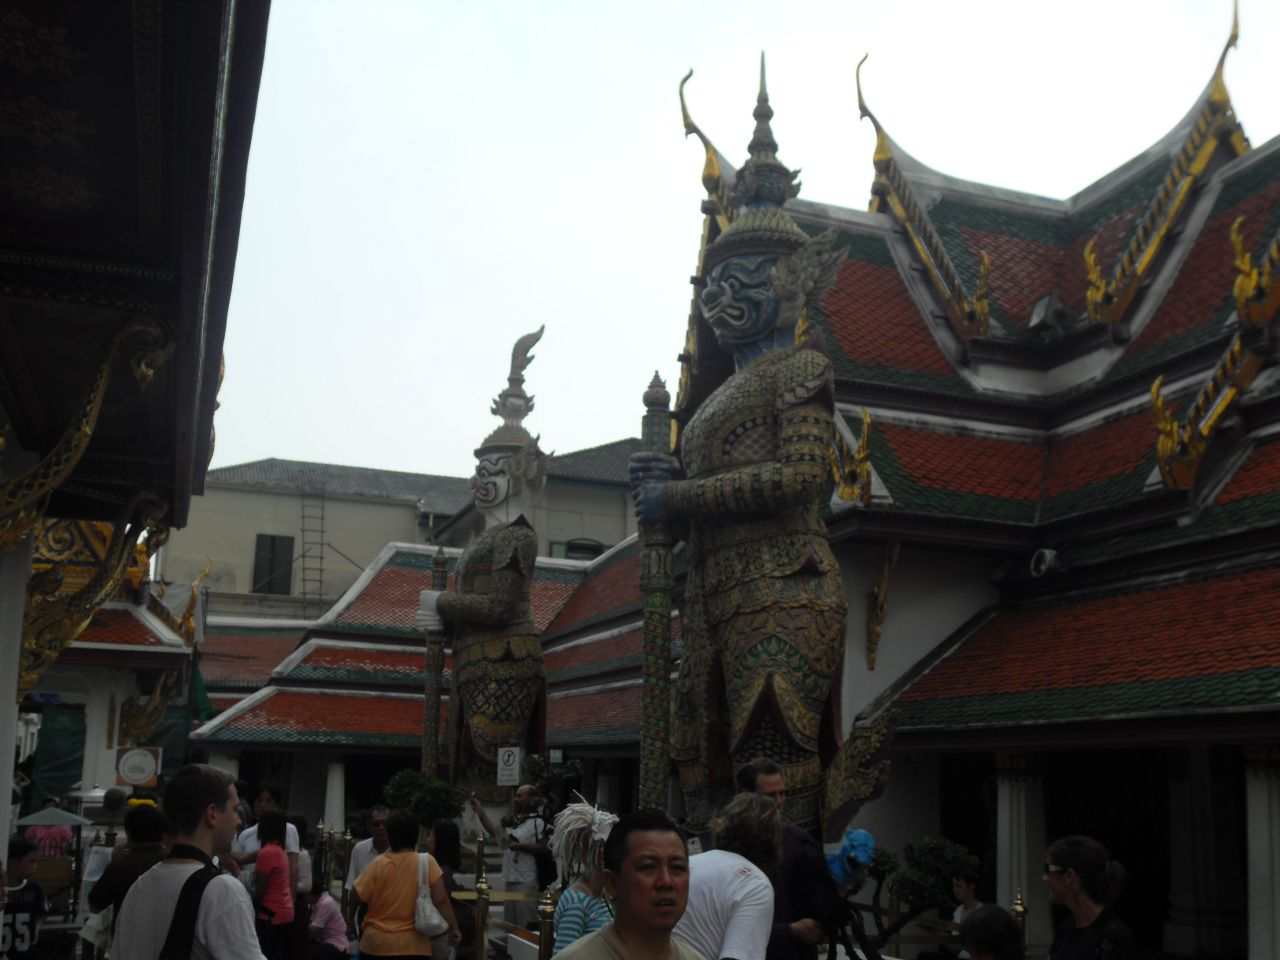 Giant Demon guards at Grand Palace